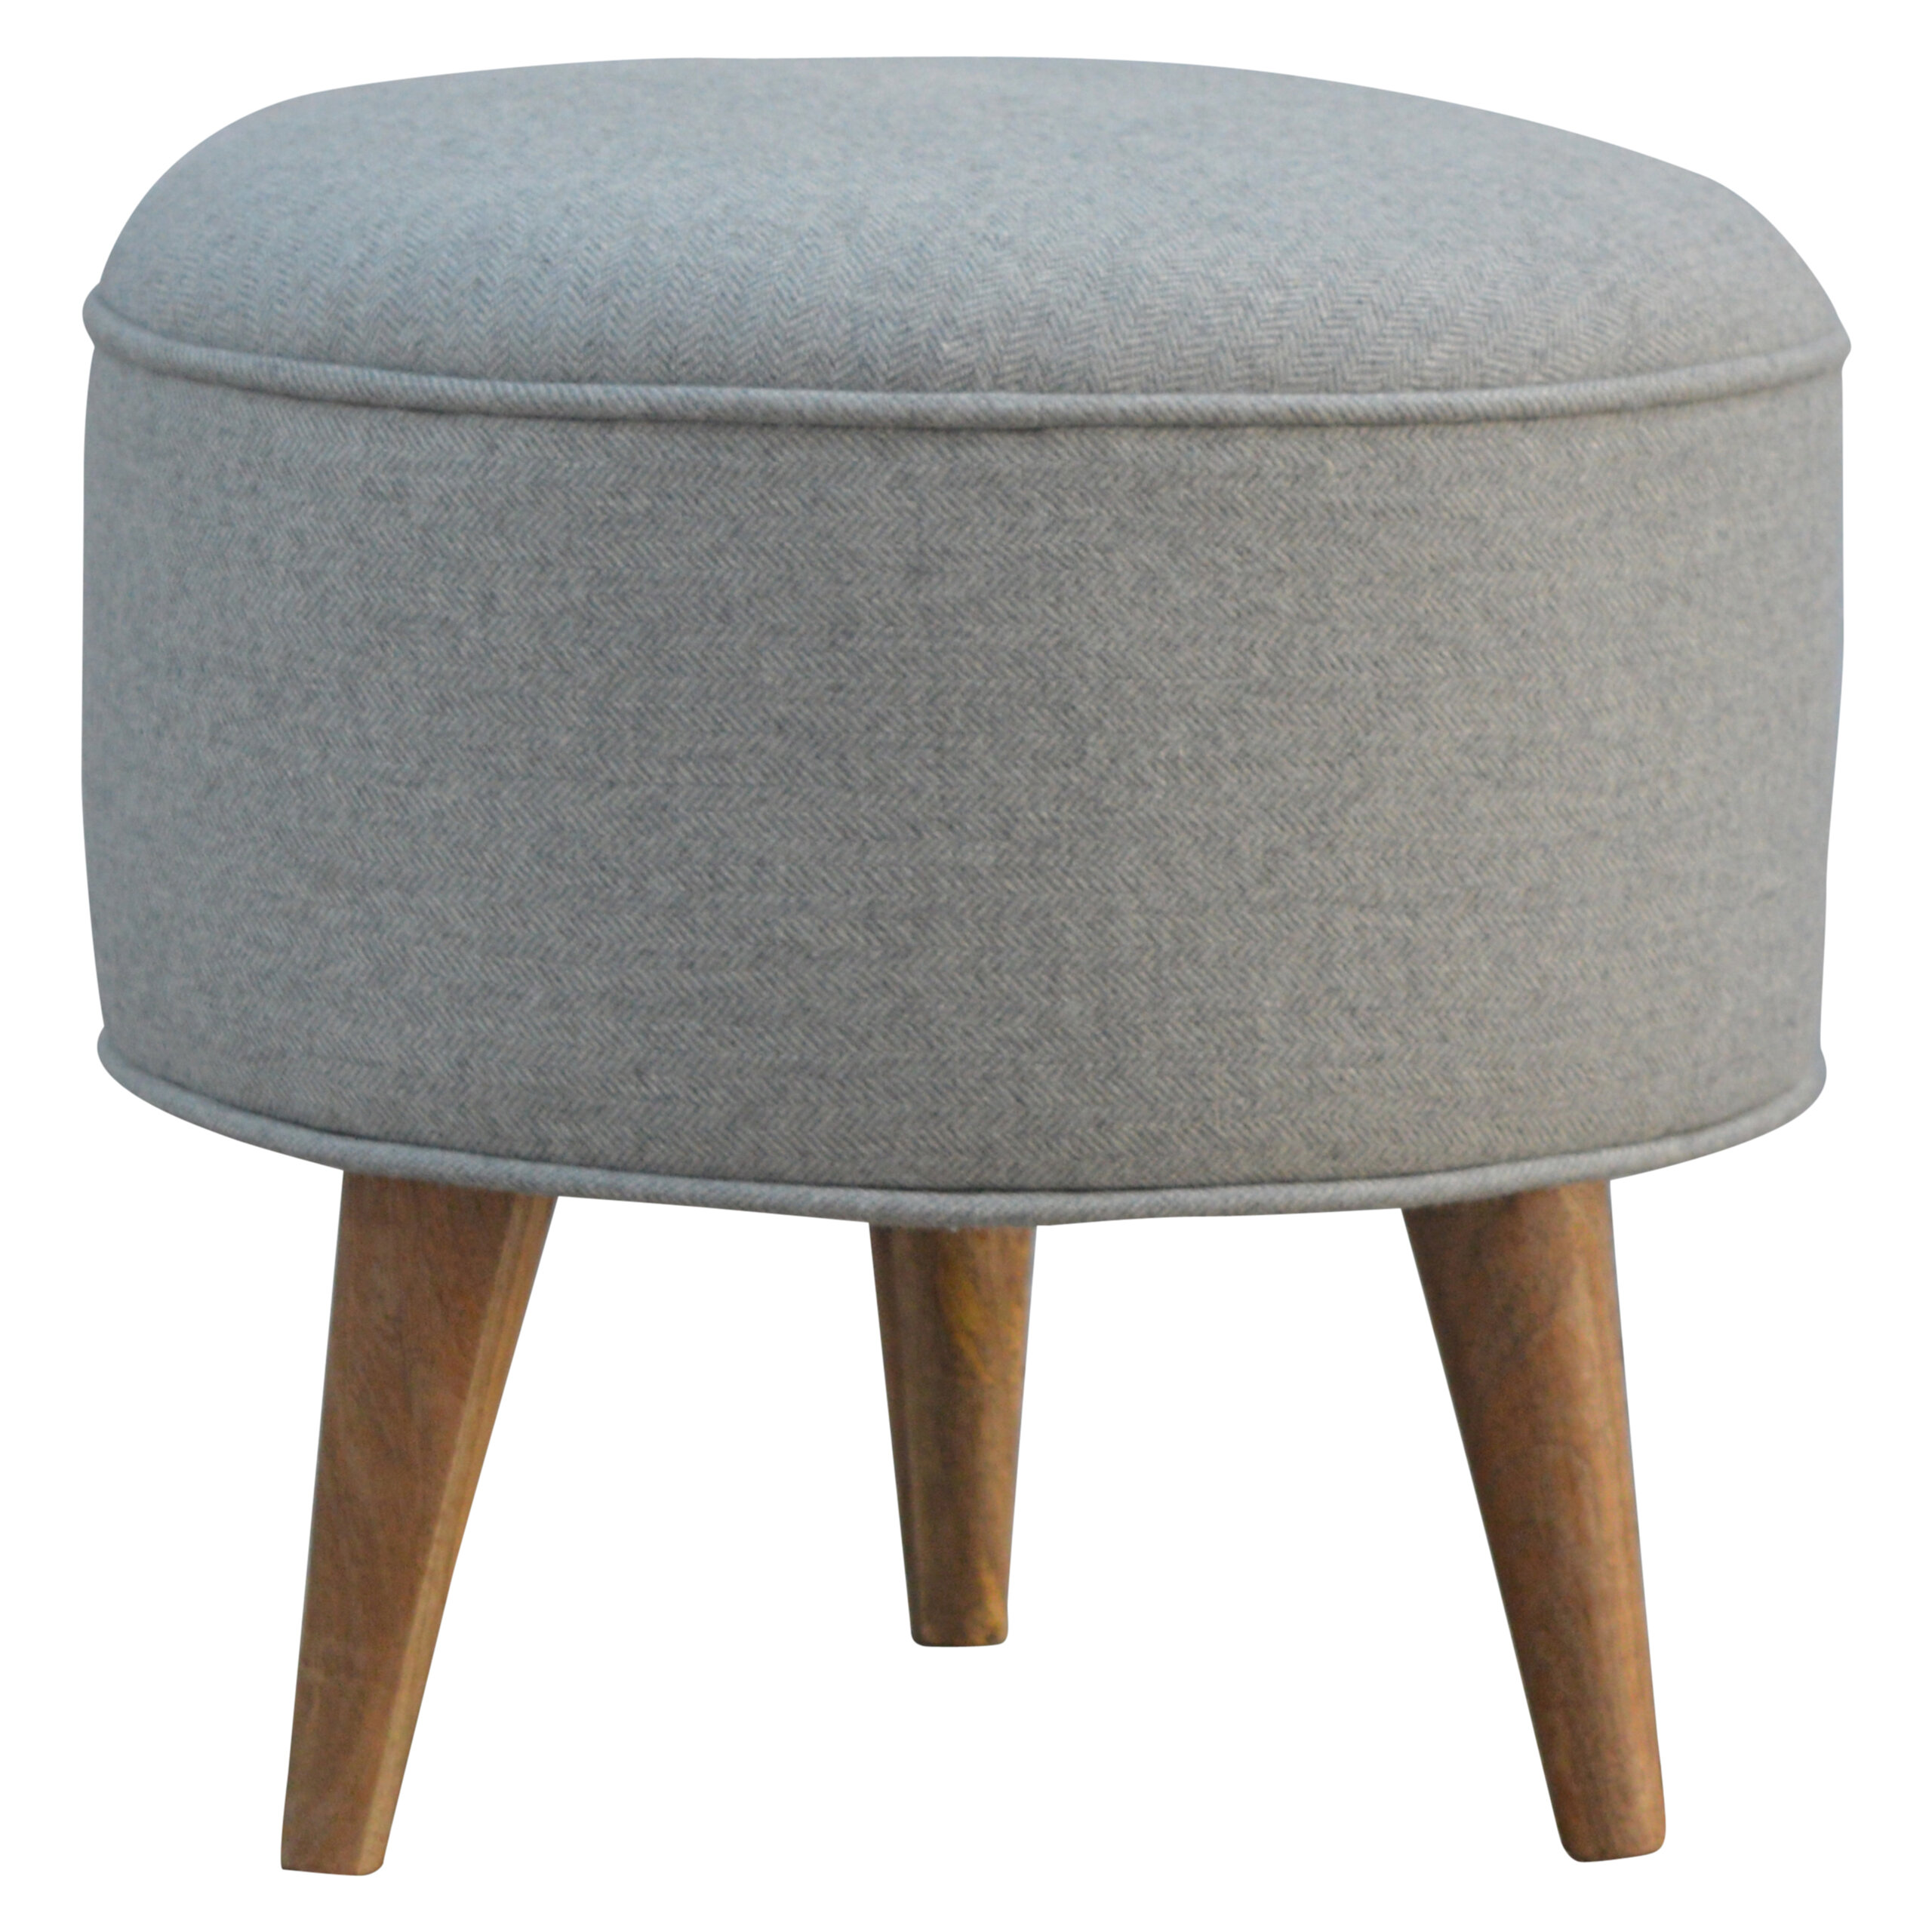 drawing ottoman interior small sculpture gray without decorative shade with table floral top stone large sets sofa wooden laminate window rabbit arms living leather coffee grey desk room